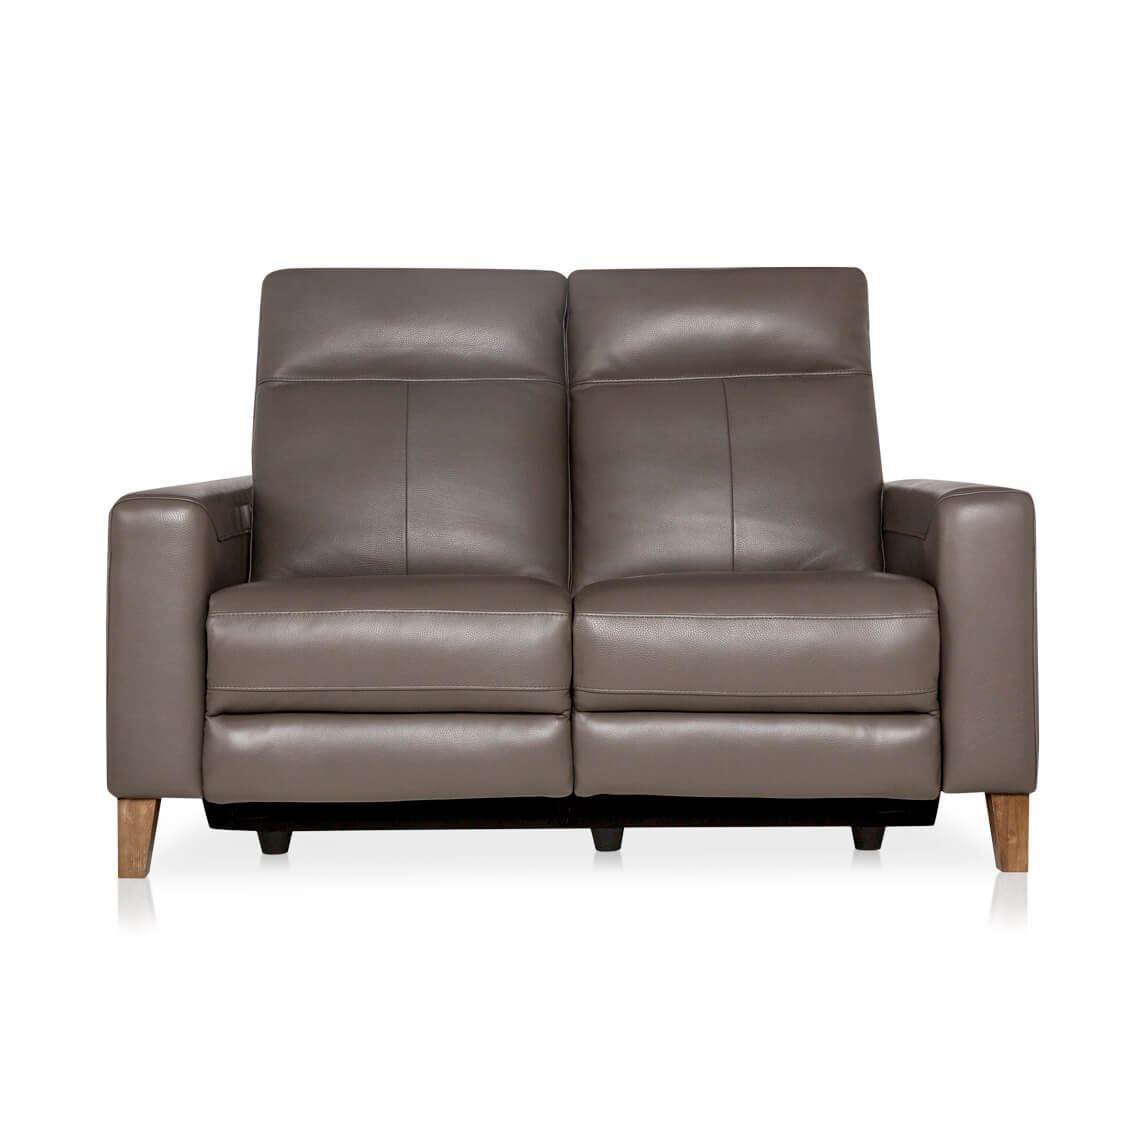 Xander 2 Seat Leather Electric Recliner Sofa Taupe Reclining Sofa Electric Recliners Sofa